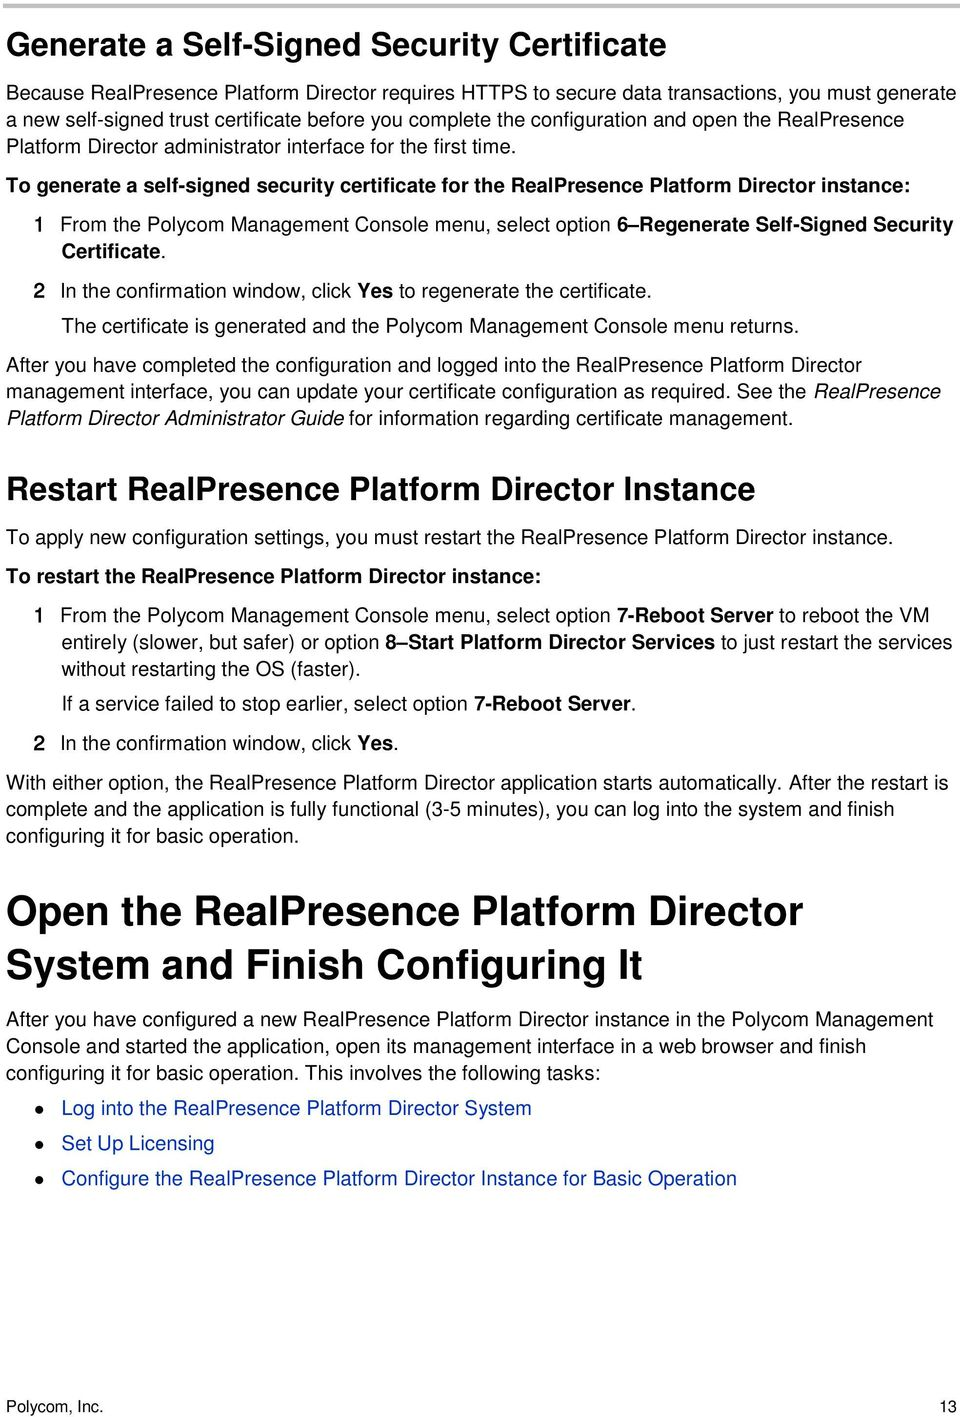 To generate a self-signed security certificate for the RealPresence Platform Director instance: 1 From the Polycom Management Console menu, select option 6 Regenerate Self-Signed Security Certificate.